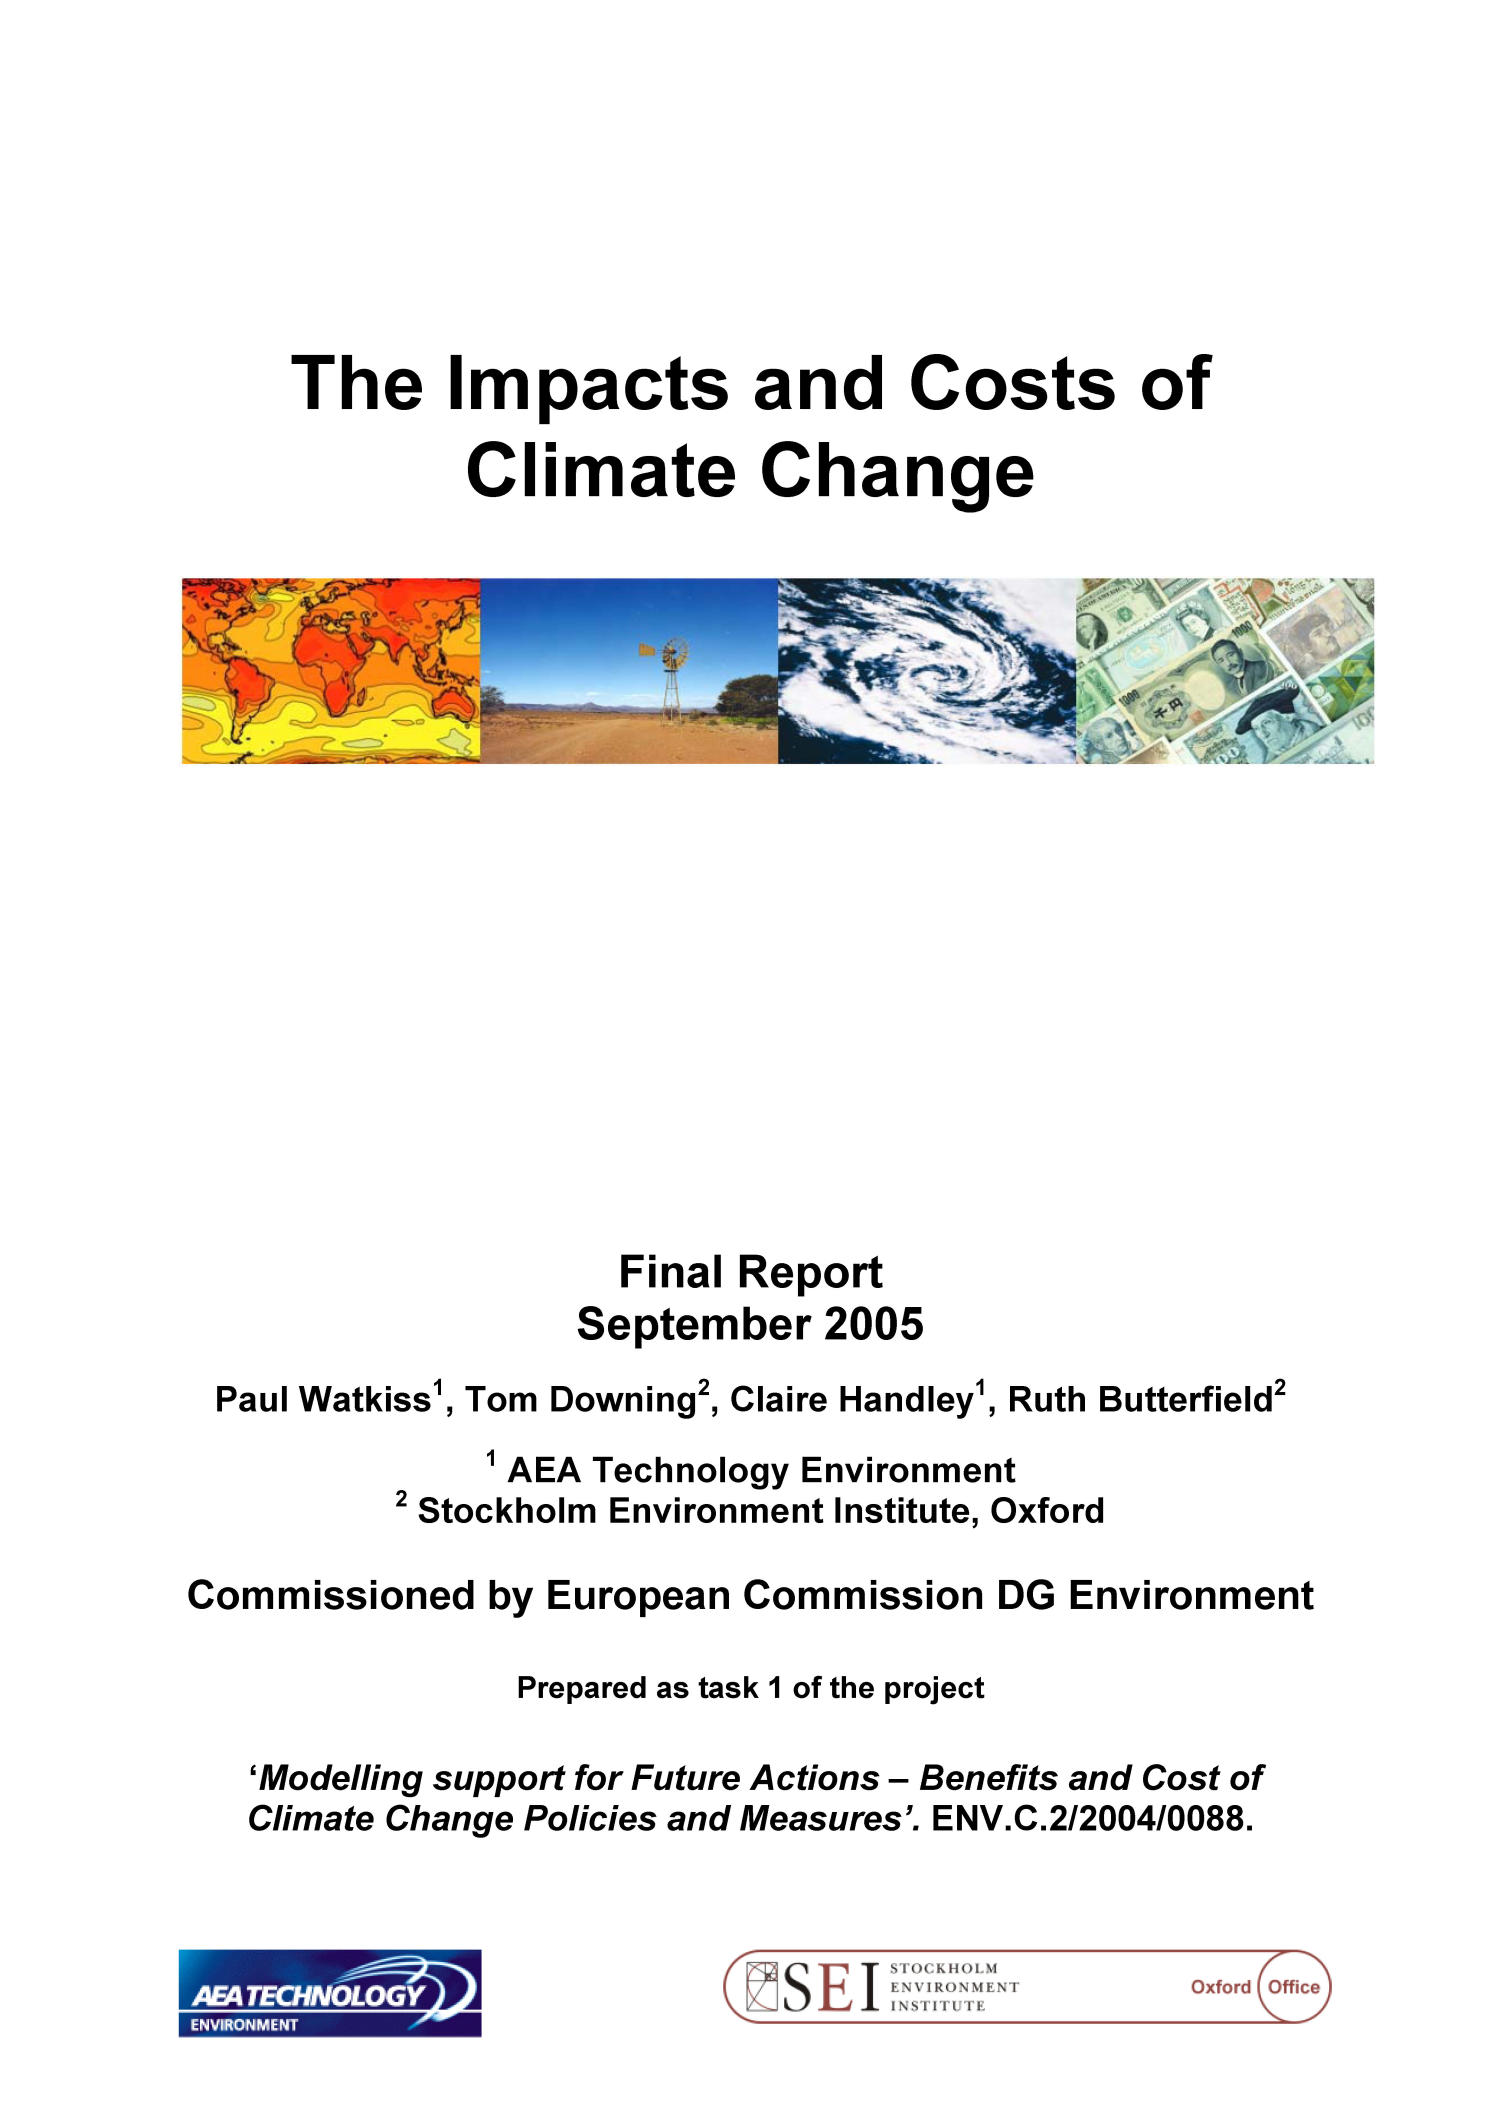 The Impacts and Costs of Climate Change                                                                                                      Front Cover